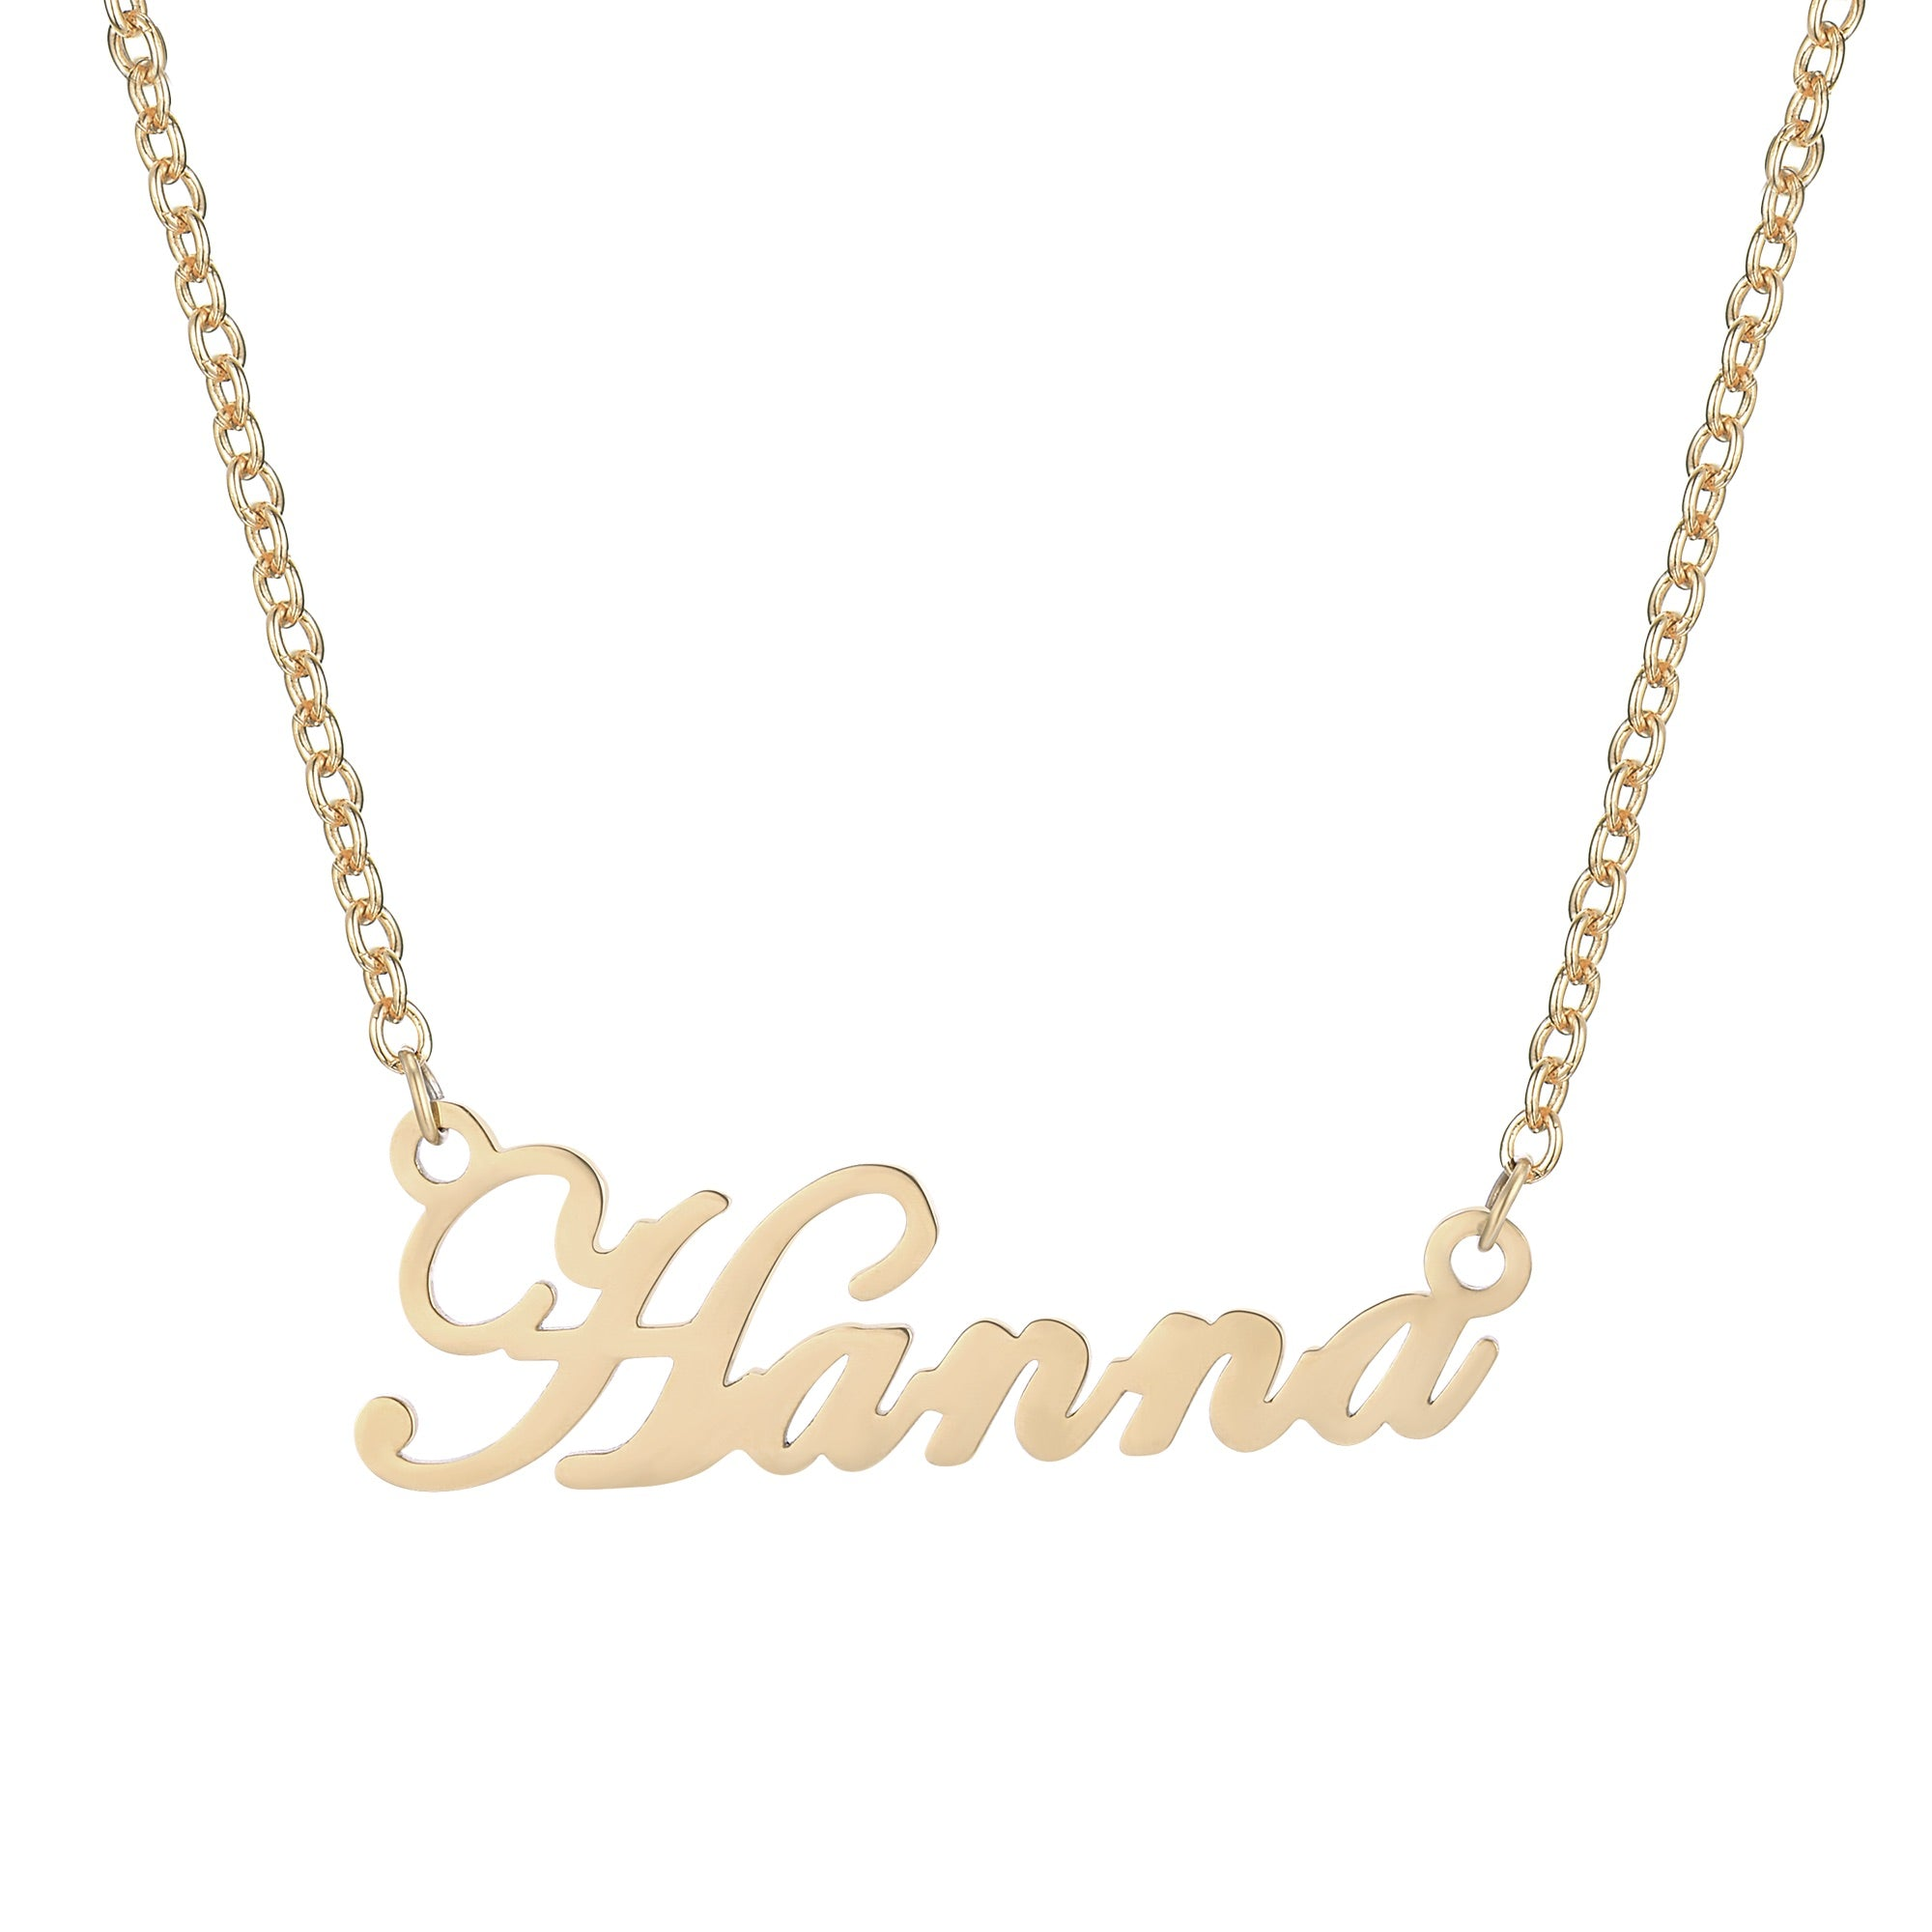 95ef82fa4233 Personalized Name Necklace.  220.00. Compare at  499.99. Metal Material. 14K  SOLID GOLD ...